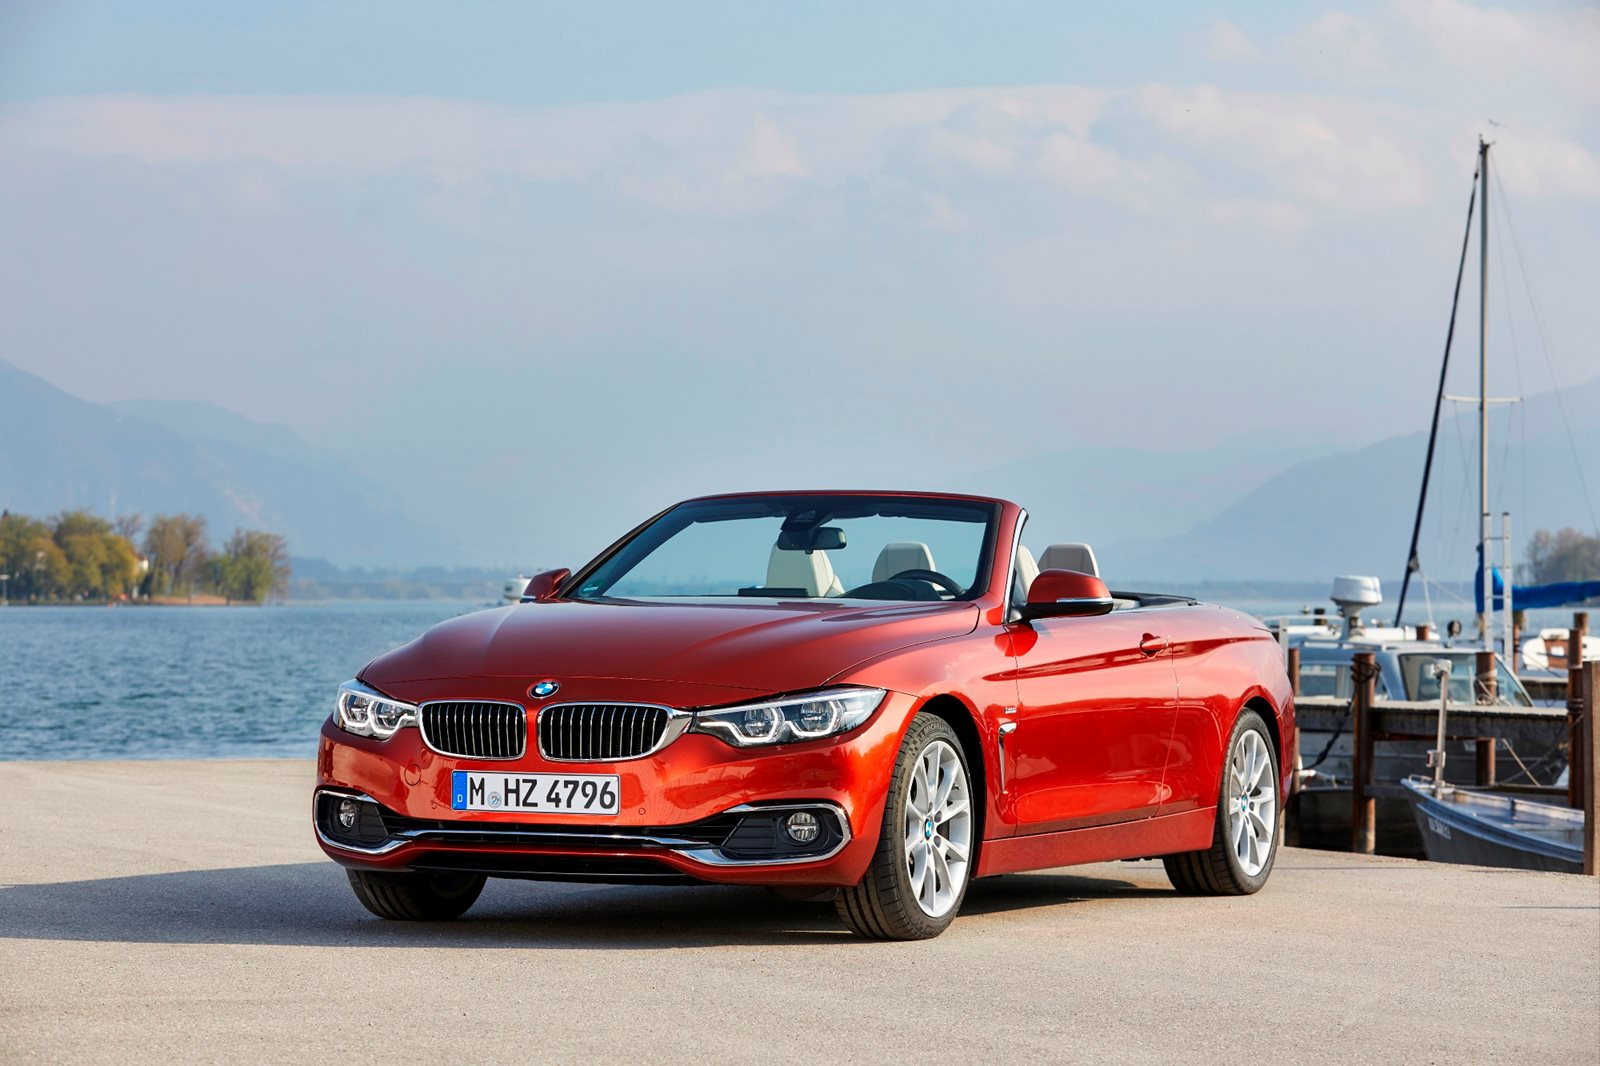 2020 Bmw 4 Series Convertible Review Trims Specs Price New Interior Features Exterior Design And Specifications Carbuzz